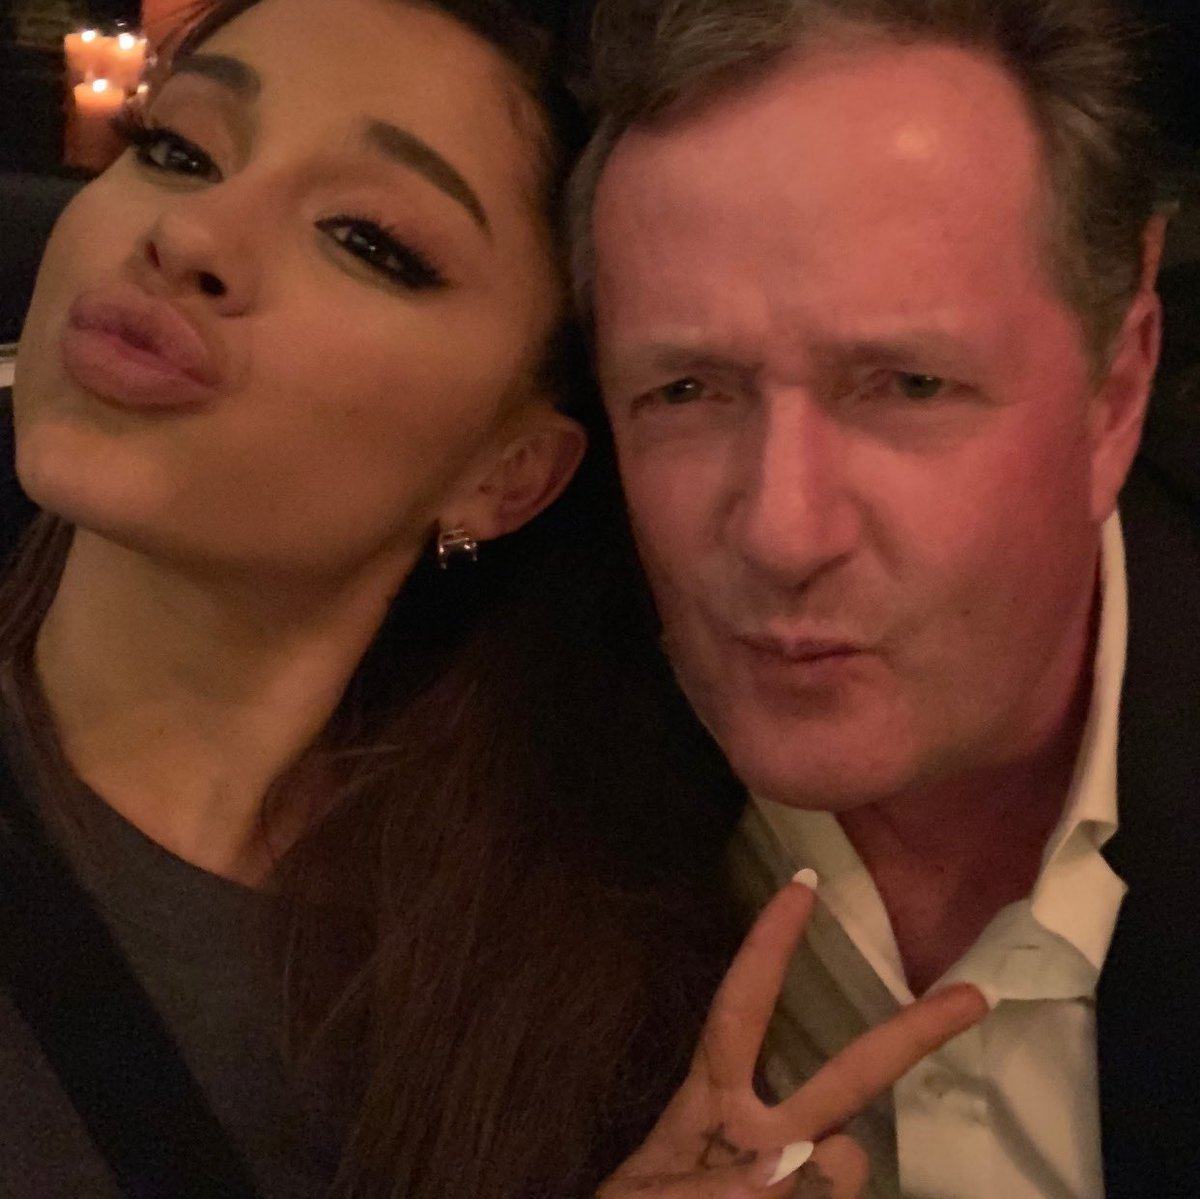 Ariana Grande and Piers Morgan Are Done Feuding—and There Are Pics to Prove It